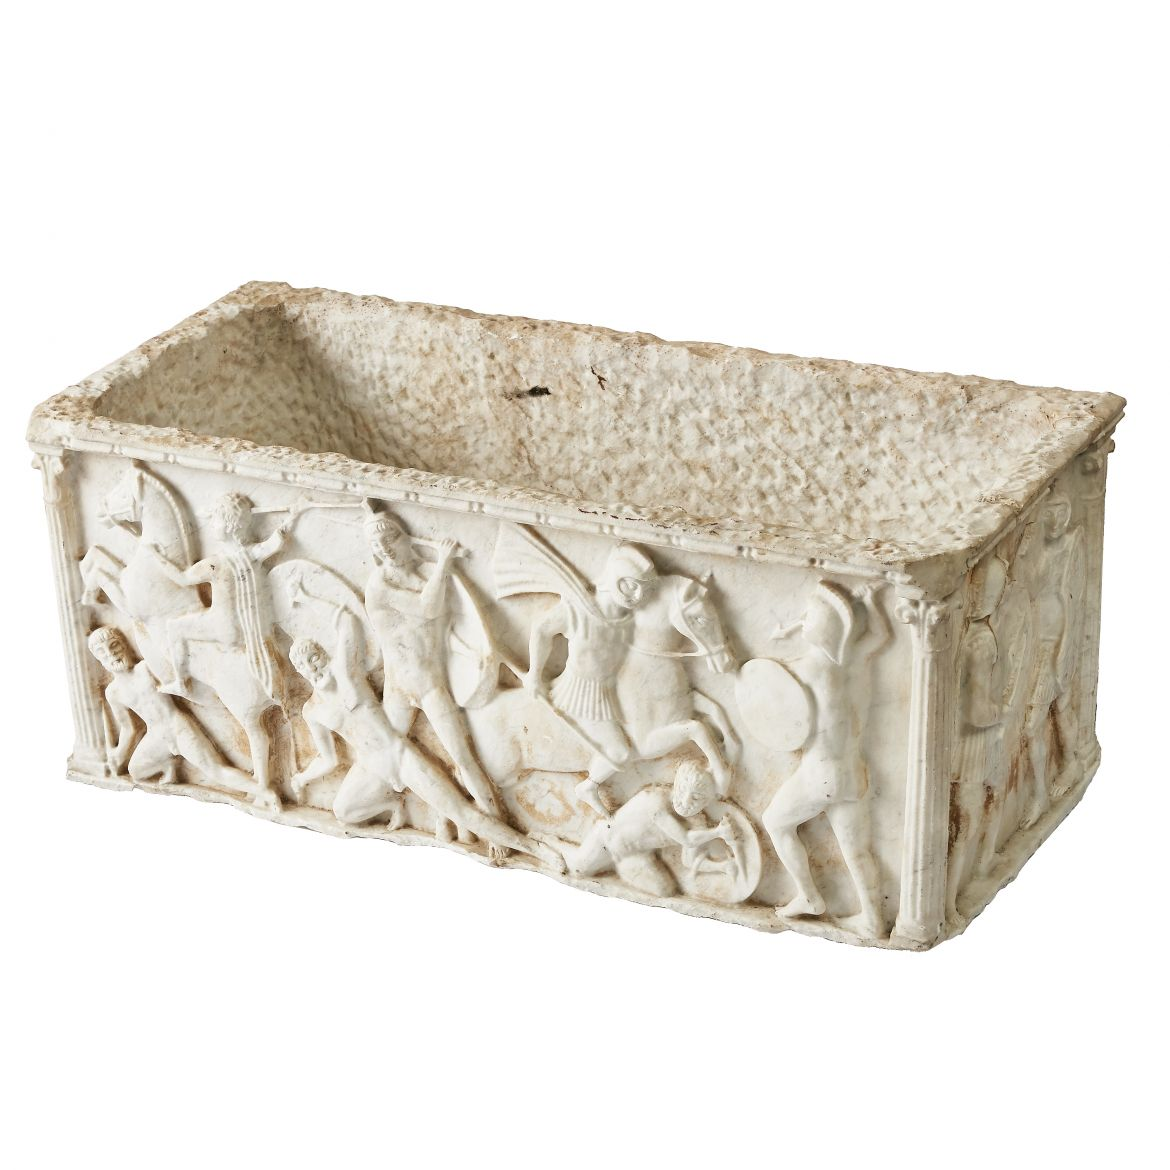 Carved Carrara Sarcophagus